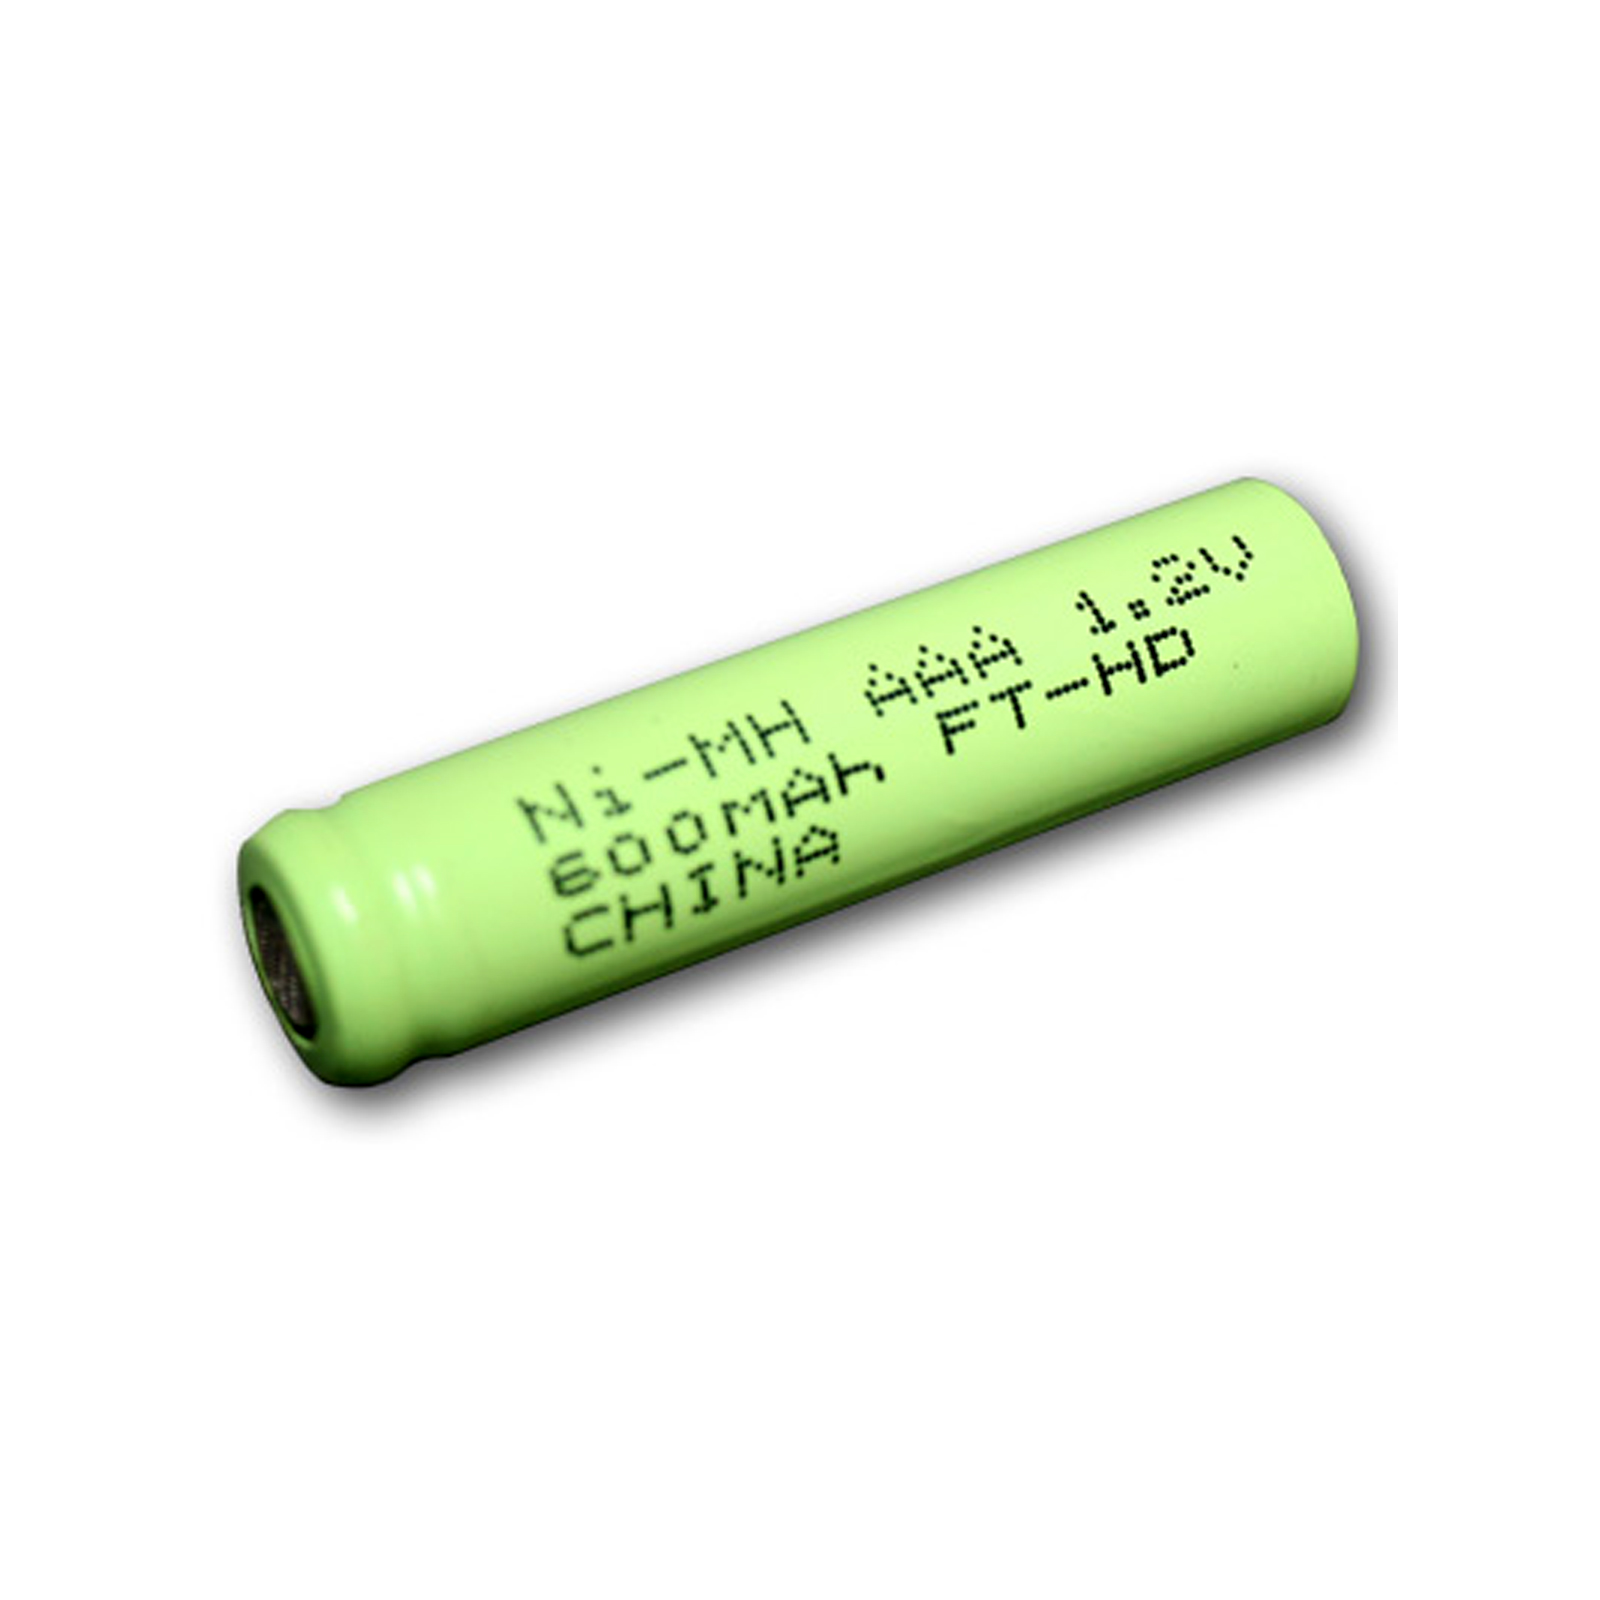 aaa size rechargeable battery 600mah nimh 1 2v flat top cell fast usa ship. Black Bedroom Furniture Sets. Home Design Ideas